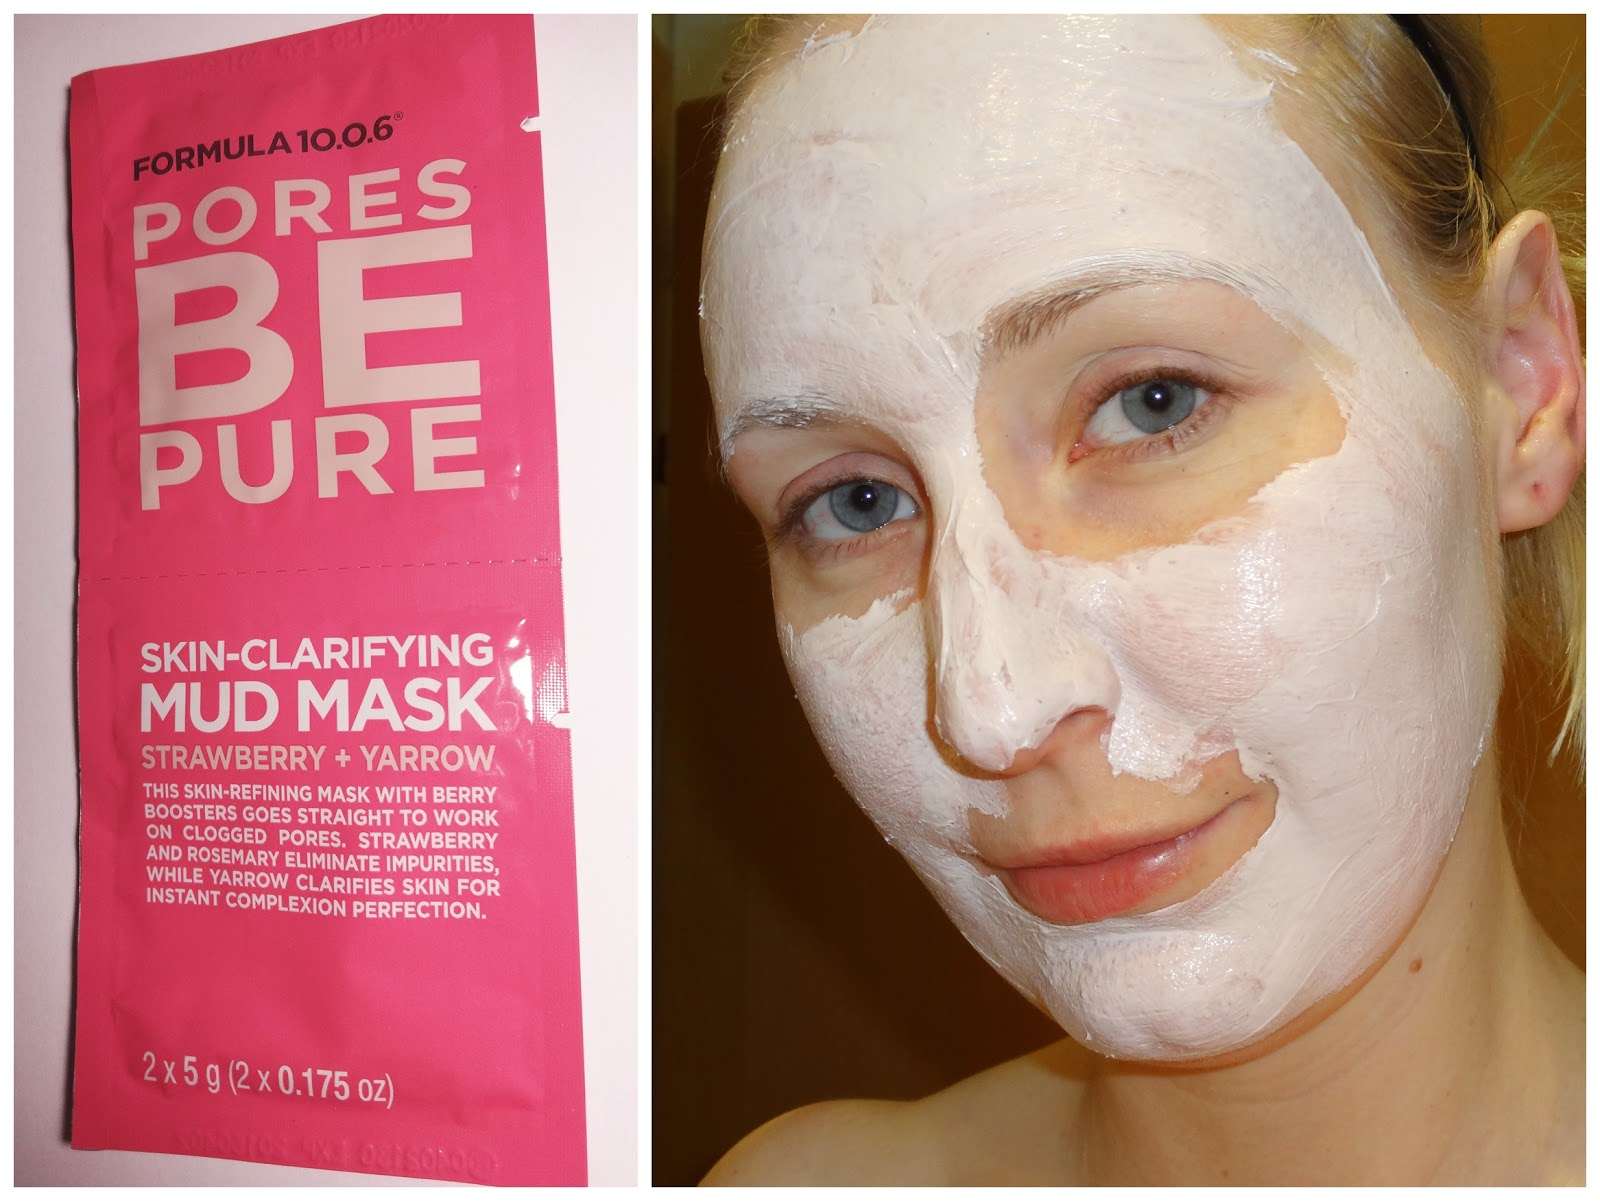 Formula 10.0.6 - Pores Be Pure Skin-Clarifying Mud Mask (Strawberry + Yarrow)